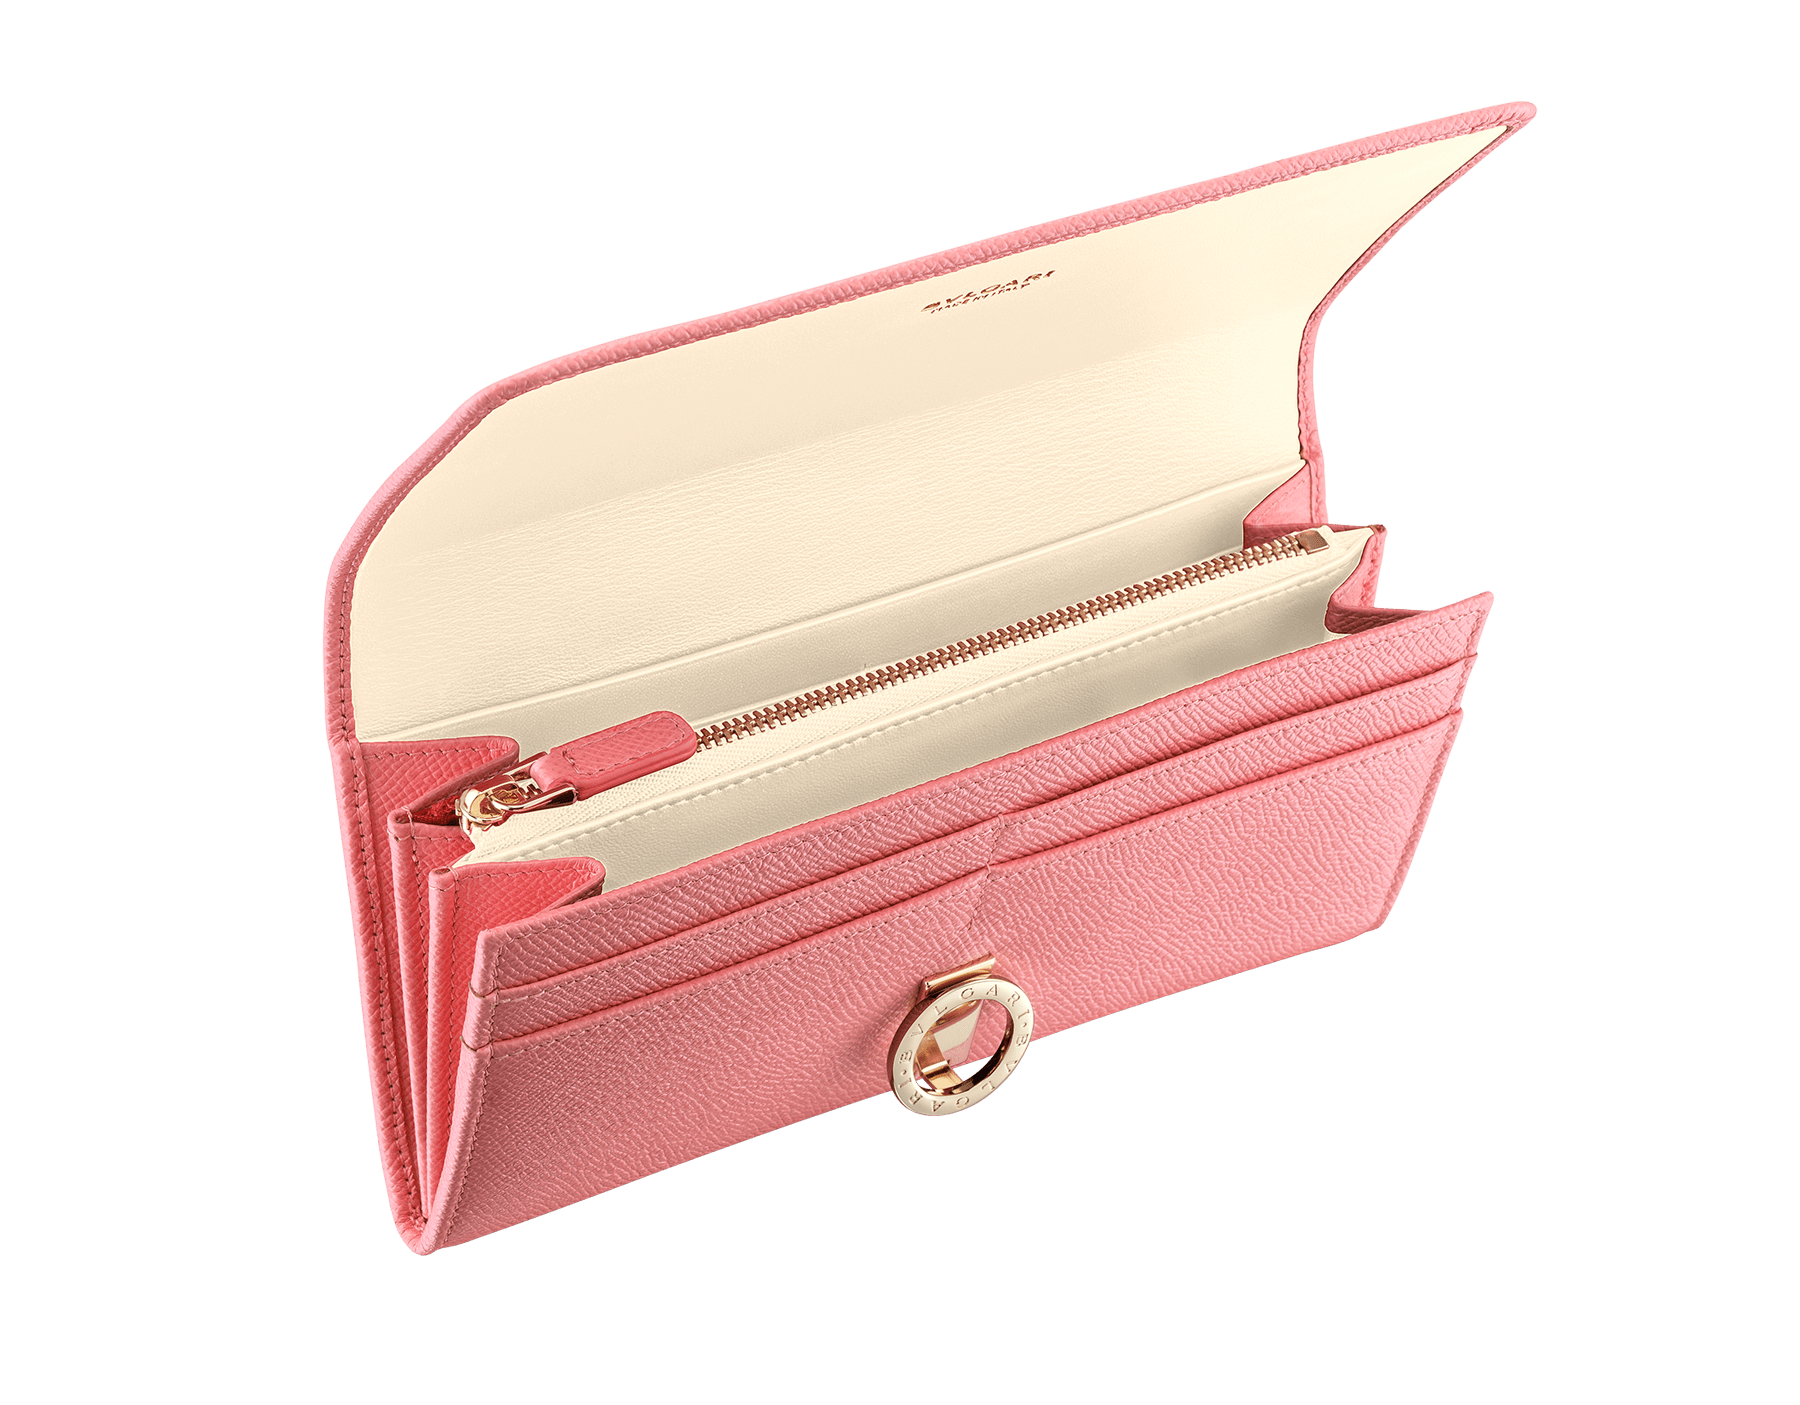 BVLGARI BVLGARI large wallet in mint bright grain calf leather and taffy quartz nappa leather. Iconic logo closure clip in light gold plated brass. 579-WLT-POCHE-16CCa image 2